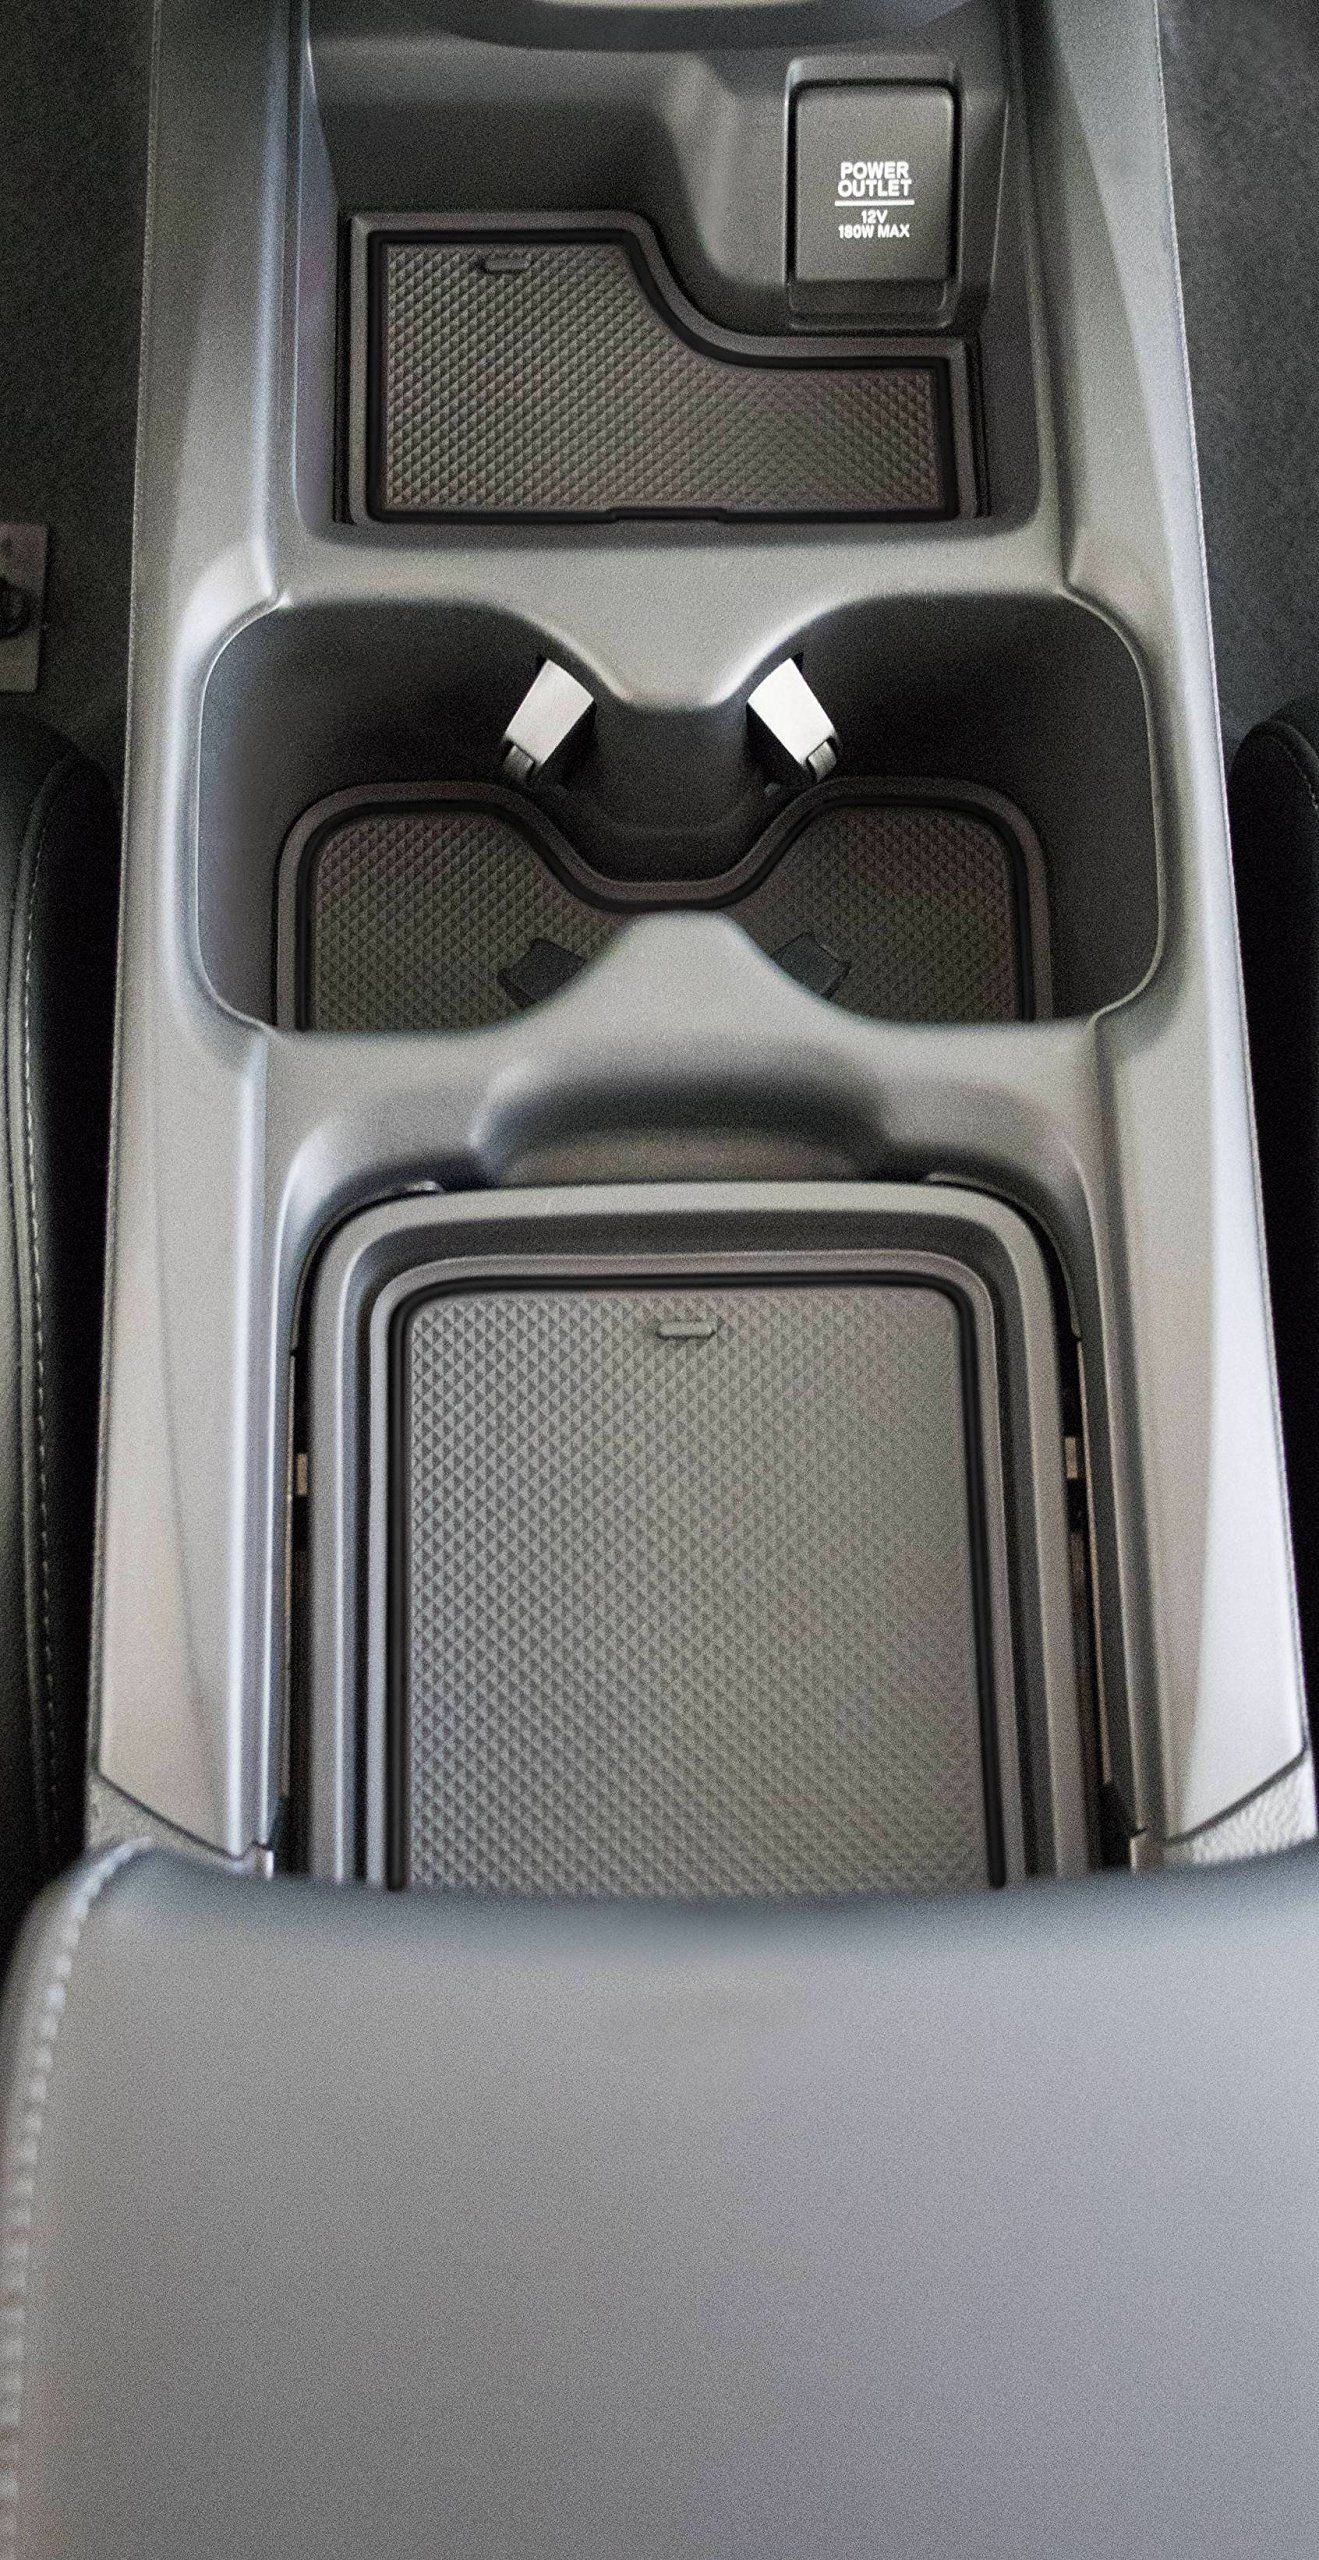 Custom Fit Cup Holder And Door Liner Accessories 2017 2018 Honda Crv 19pc Set Solid Black Click On The Image For Addit In 2020 Honda Crv Accessories Honda Honda Cr